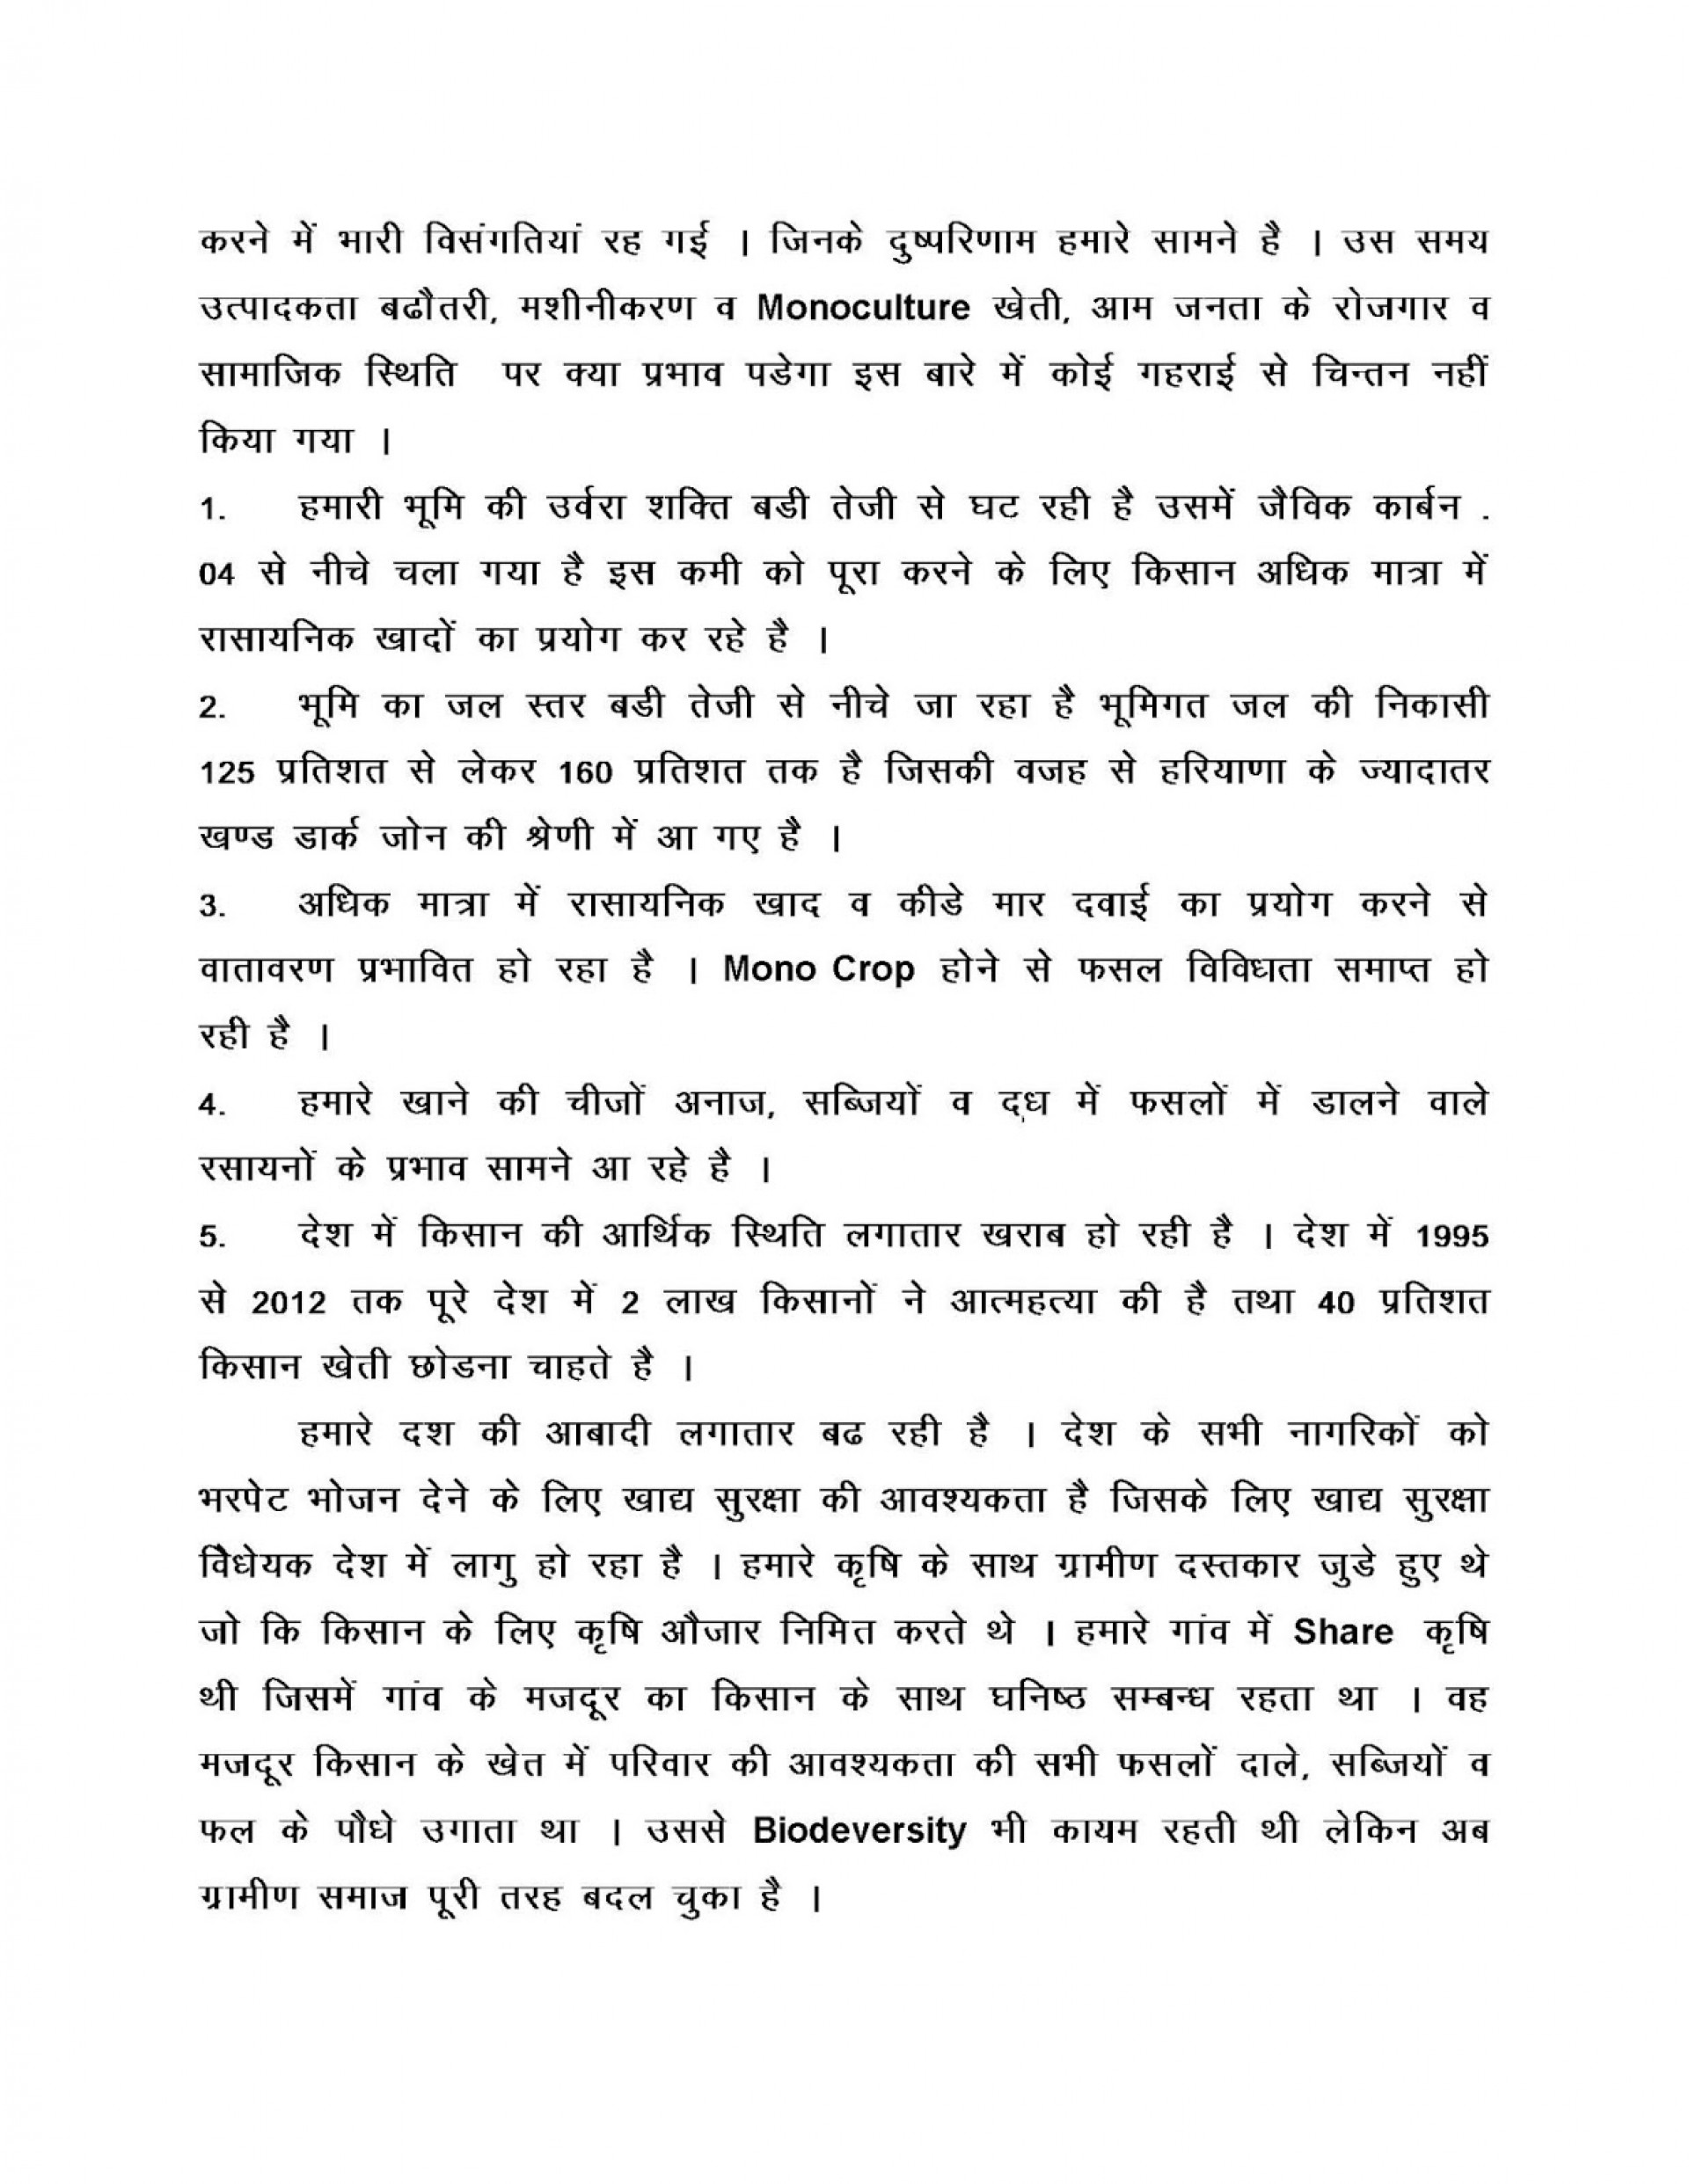 008 Essay Exampleworkdr Rajindersingh Page 2 On Electricity In Imposing Hindi Veto Power Youth Problem Language 1920